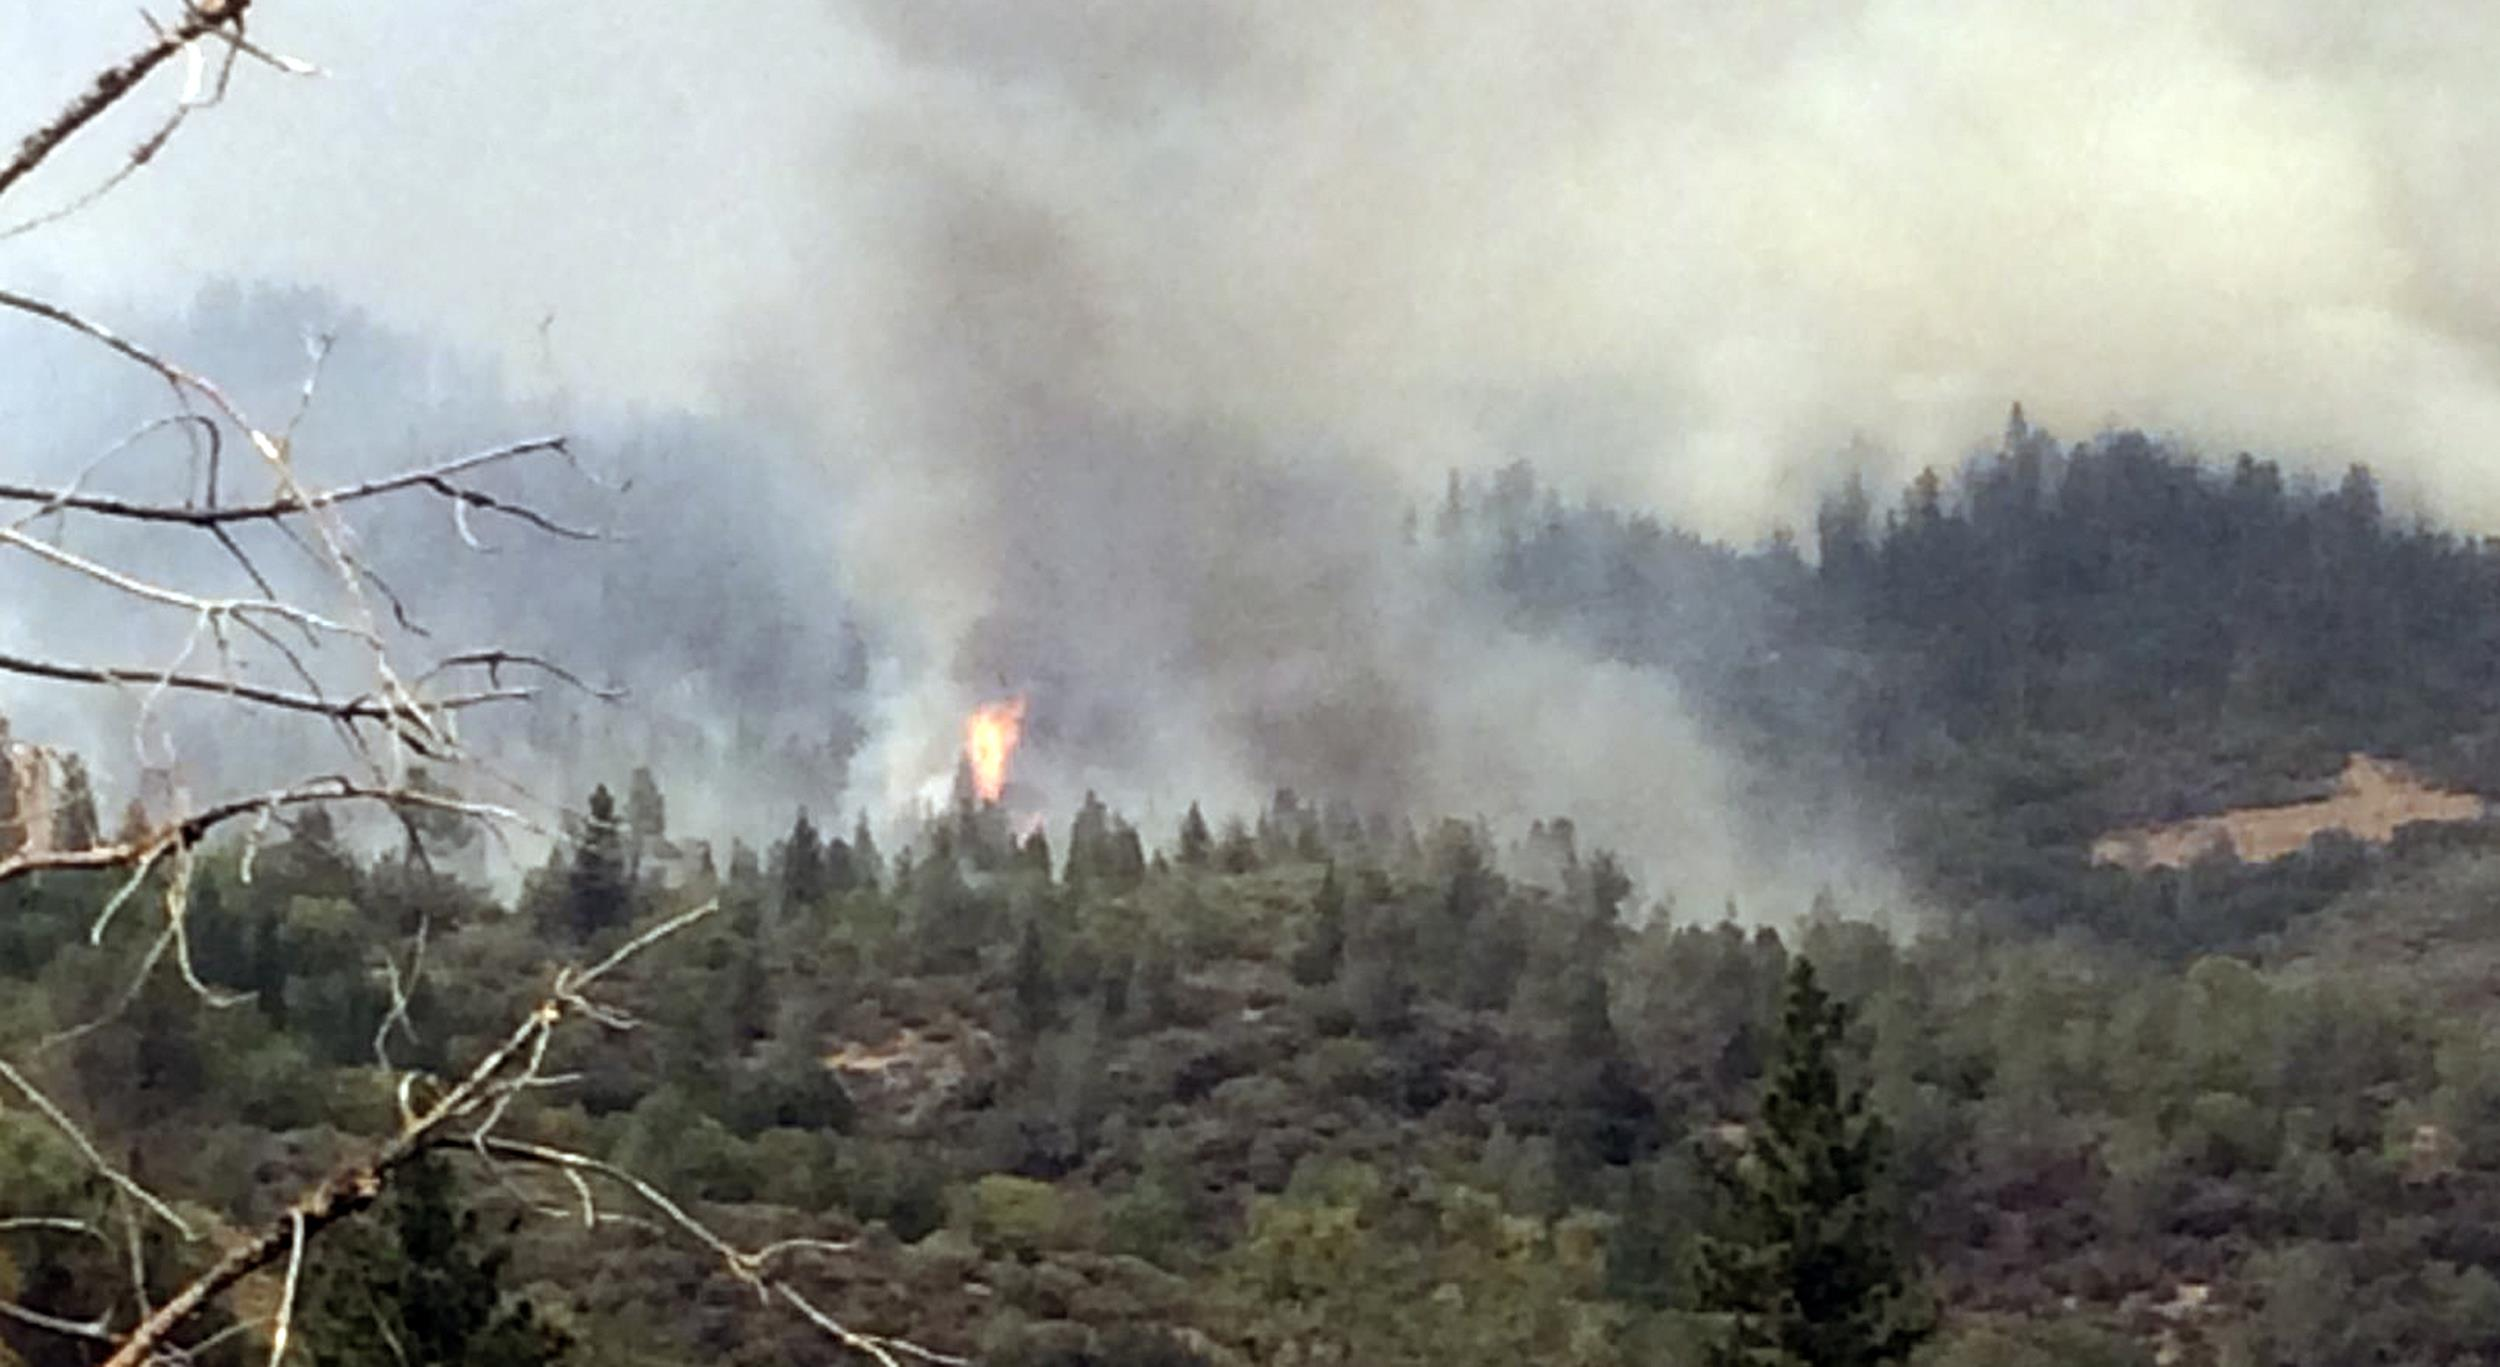 French Fire on Aug. 3, in Madera, Calif.